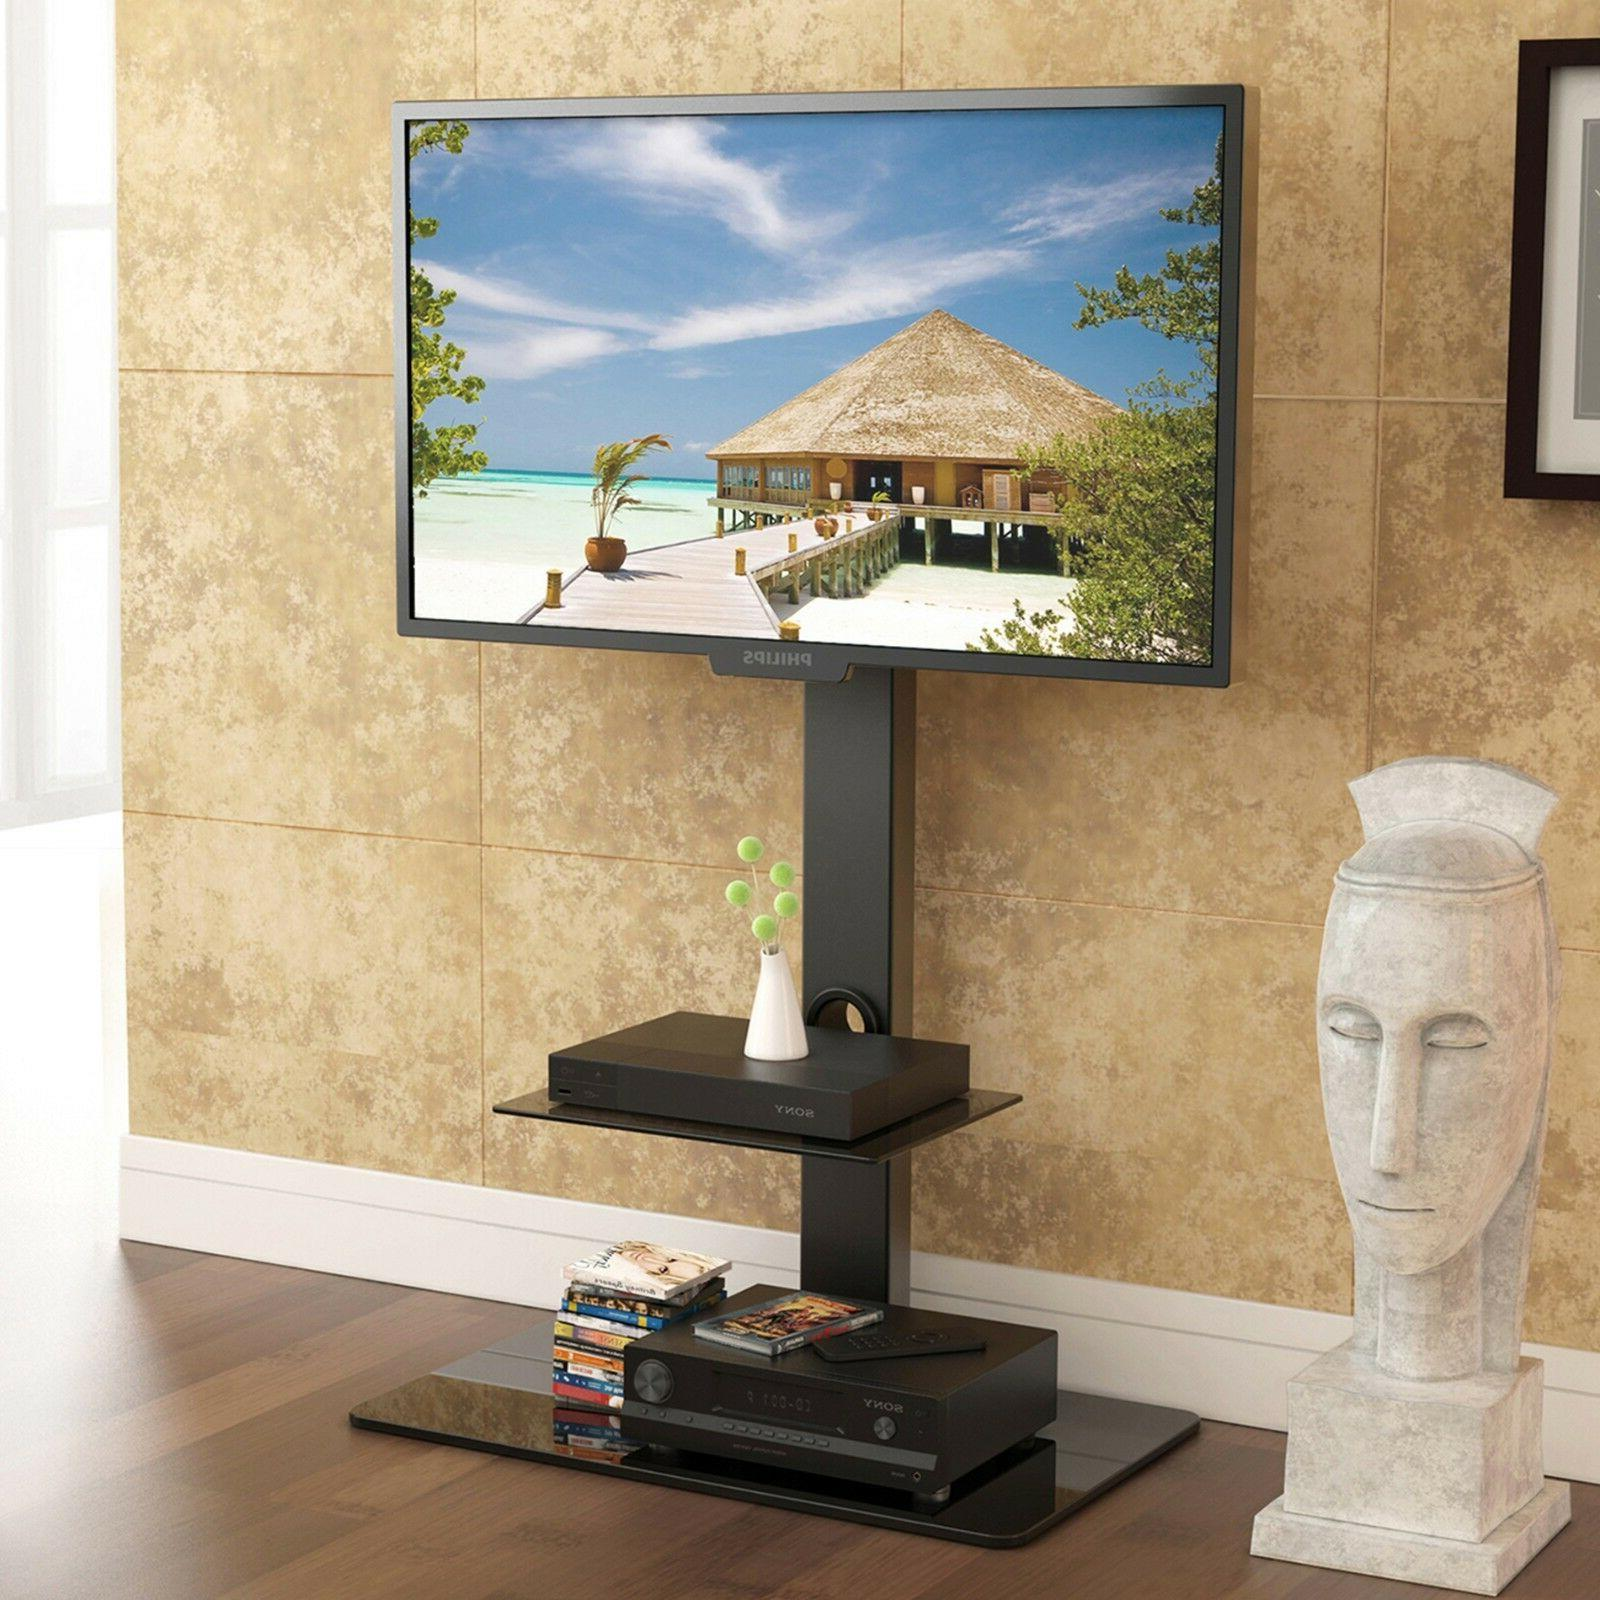 Floor TV Stand with Swivel Mount Component Shelf for 32-65""